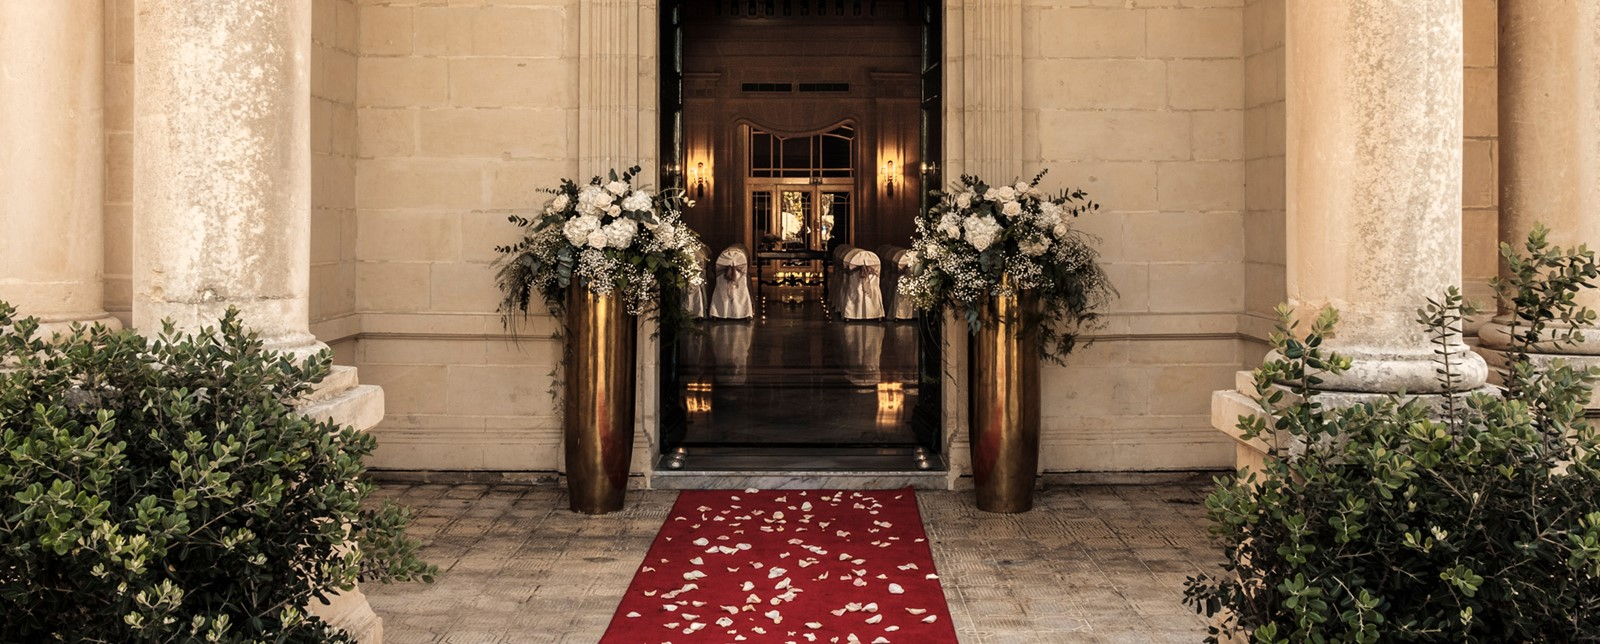 Corinthia Palace wedding entrance